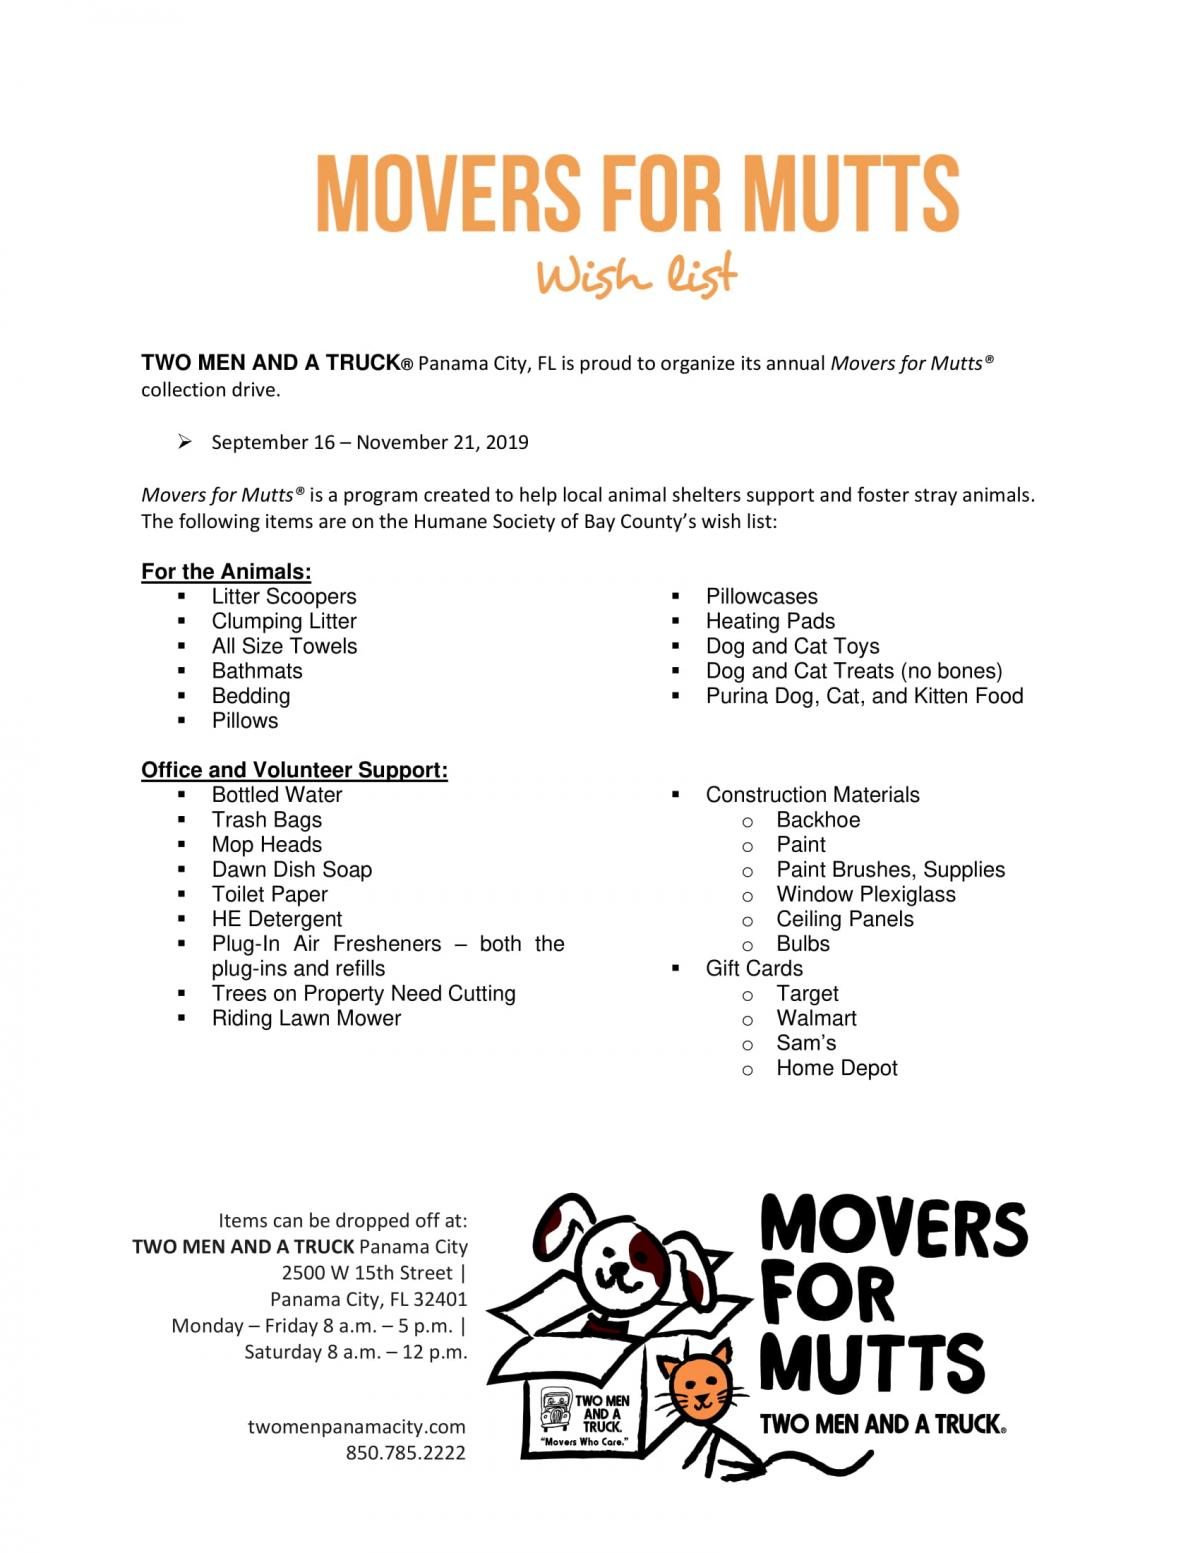 2019 Movers for Mutts Wish List